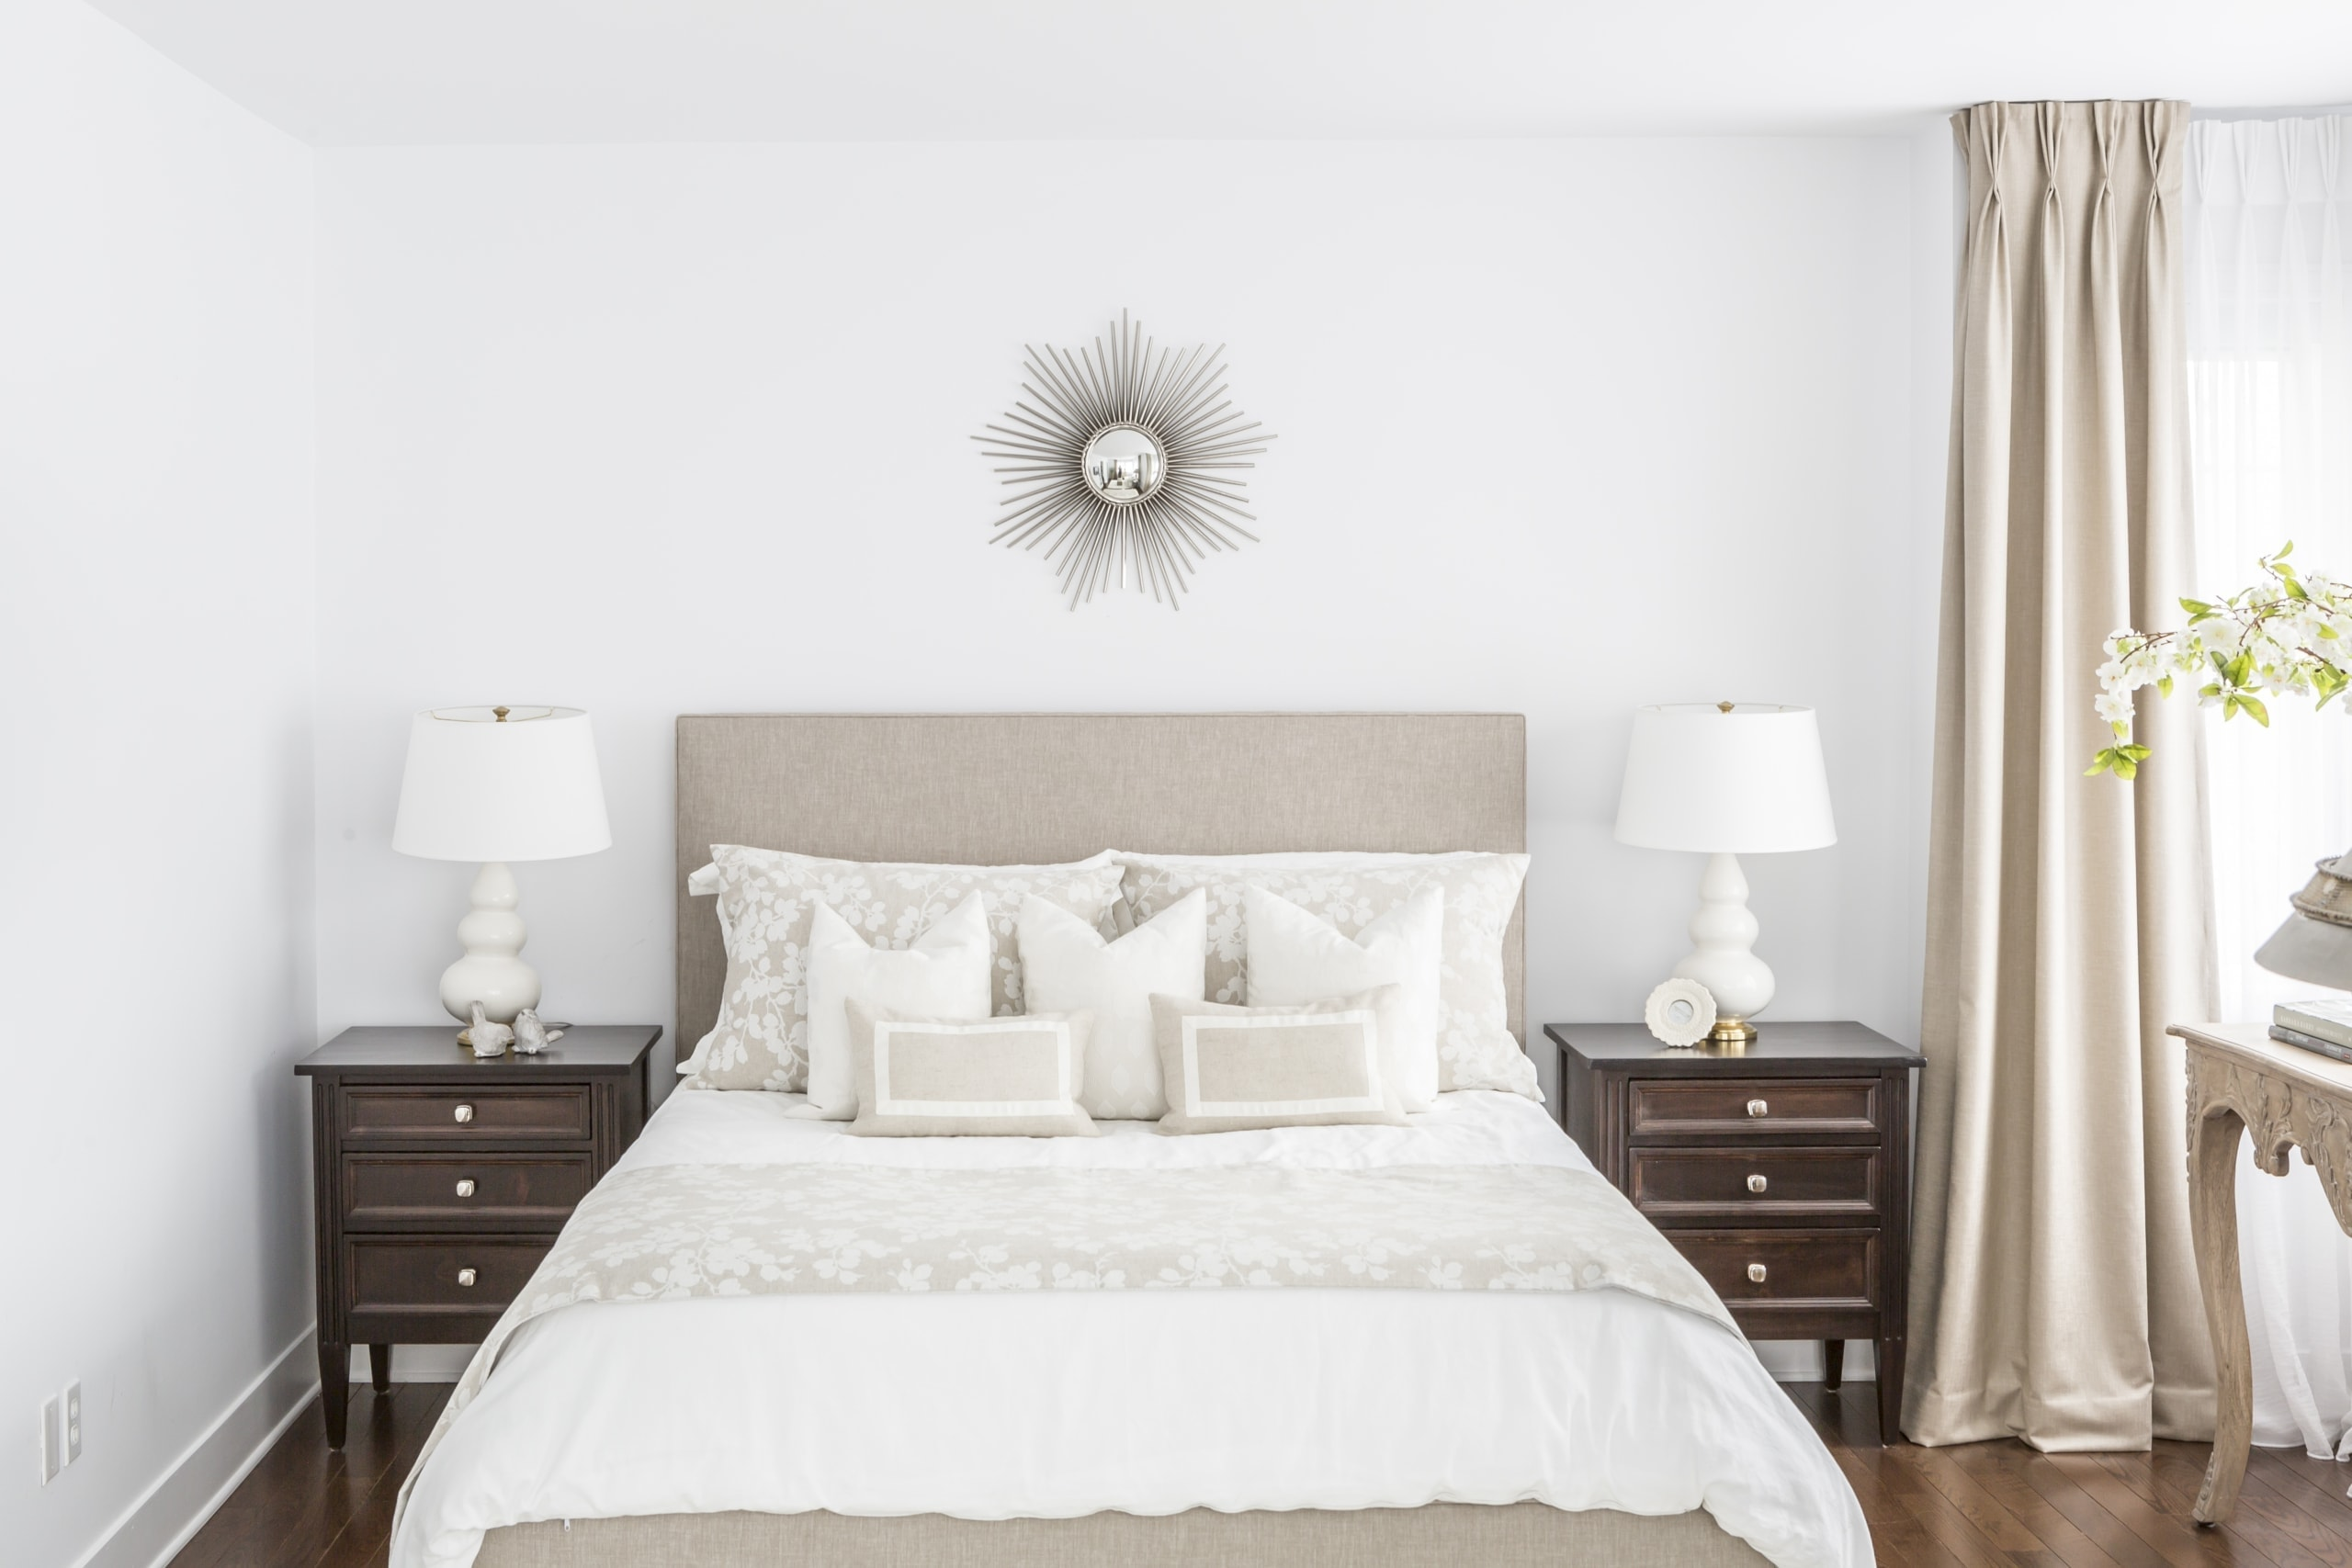 Bright master bedroom with a bright white bed